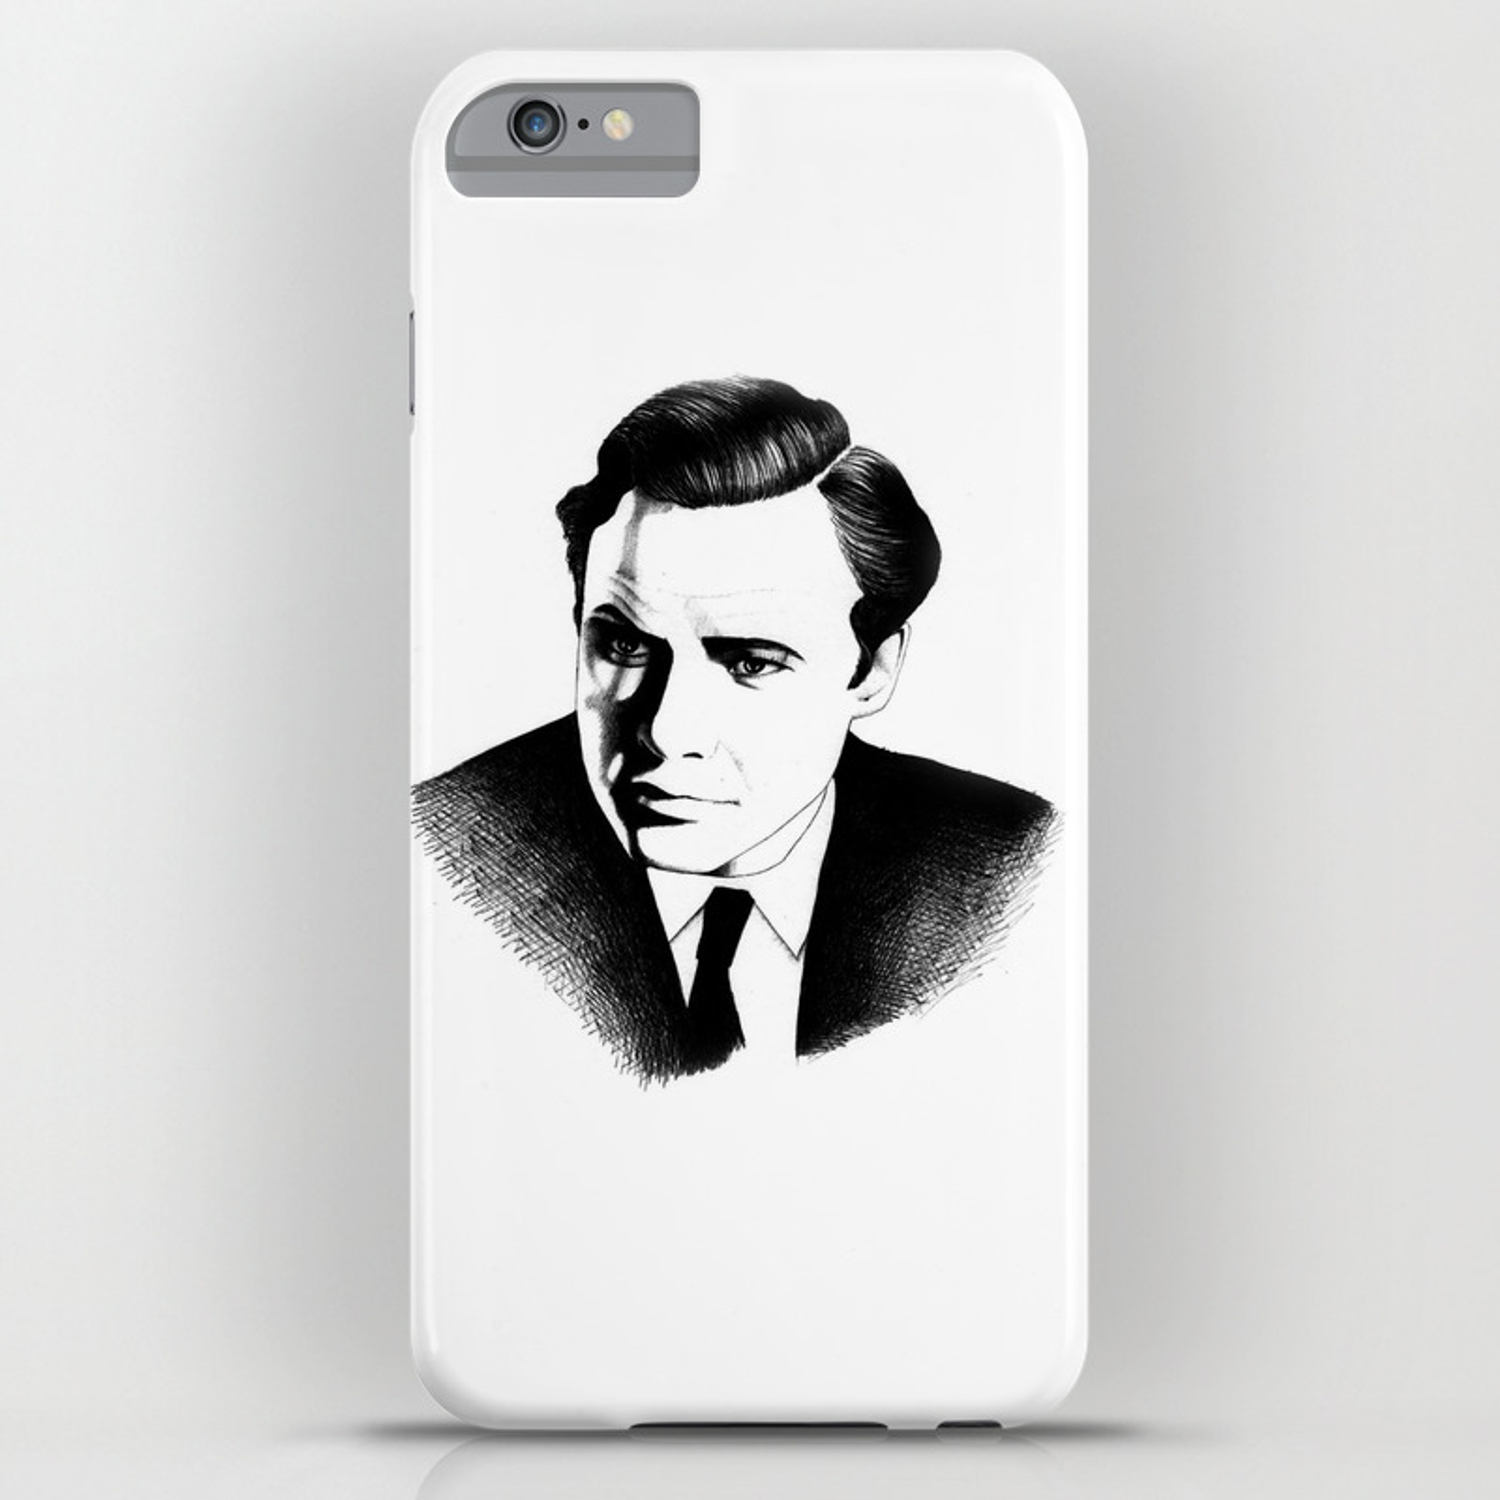 Marlon Brando Iphone 6 Plus Cover Case